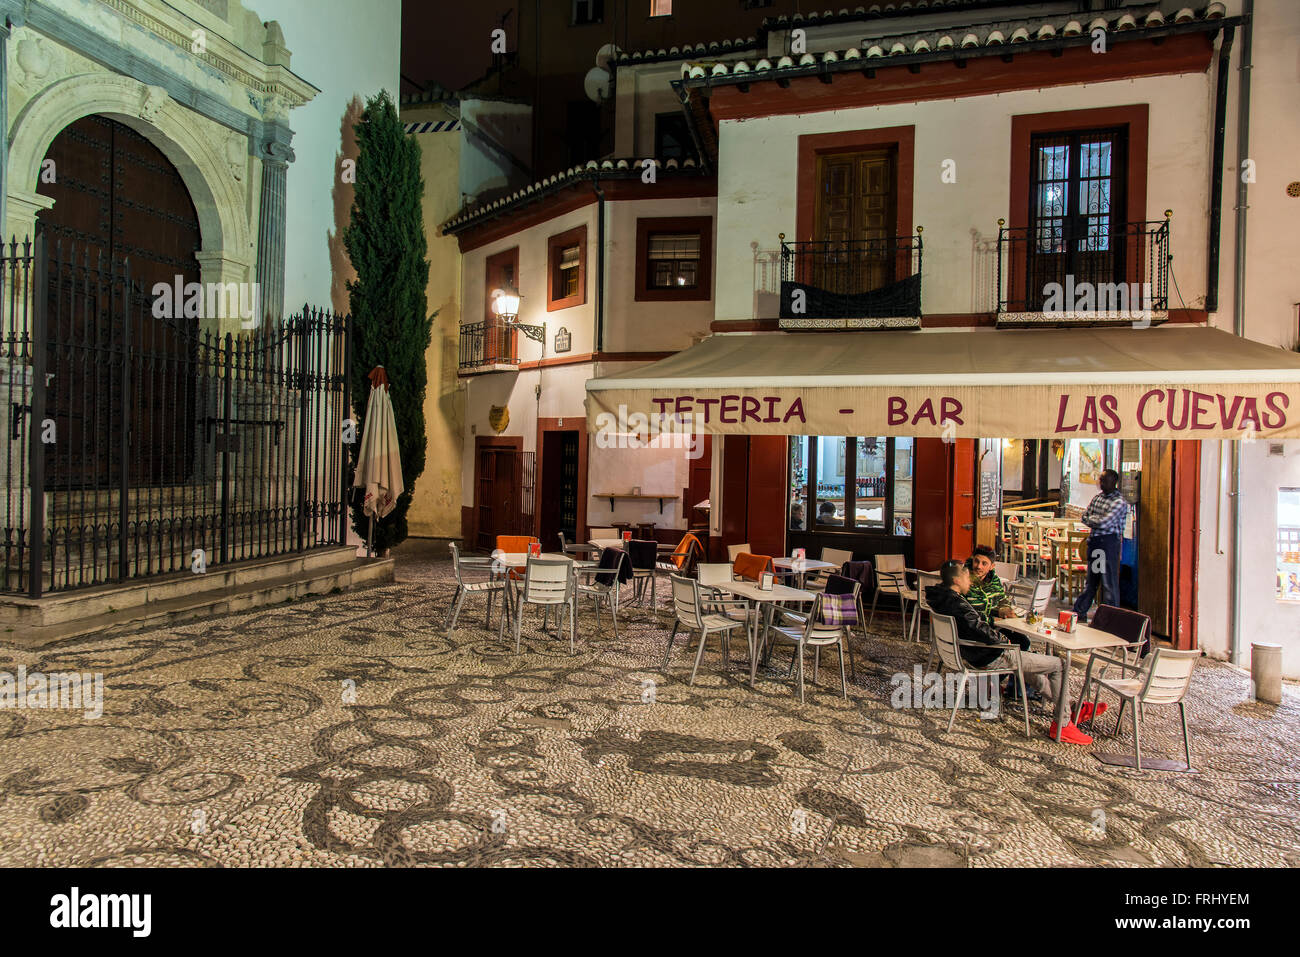 Nightlife atmosphere in the Albayzin quarter, Granada, Andalusia, Spain Stock Photo